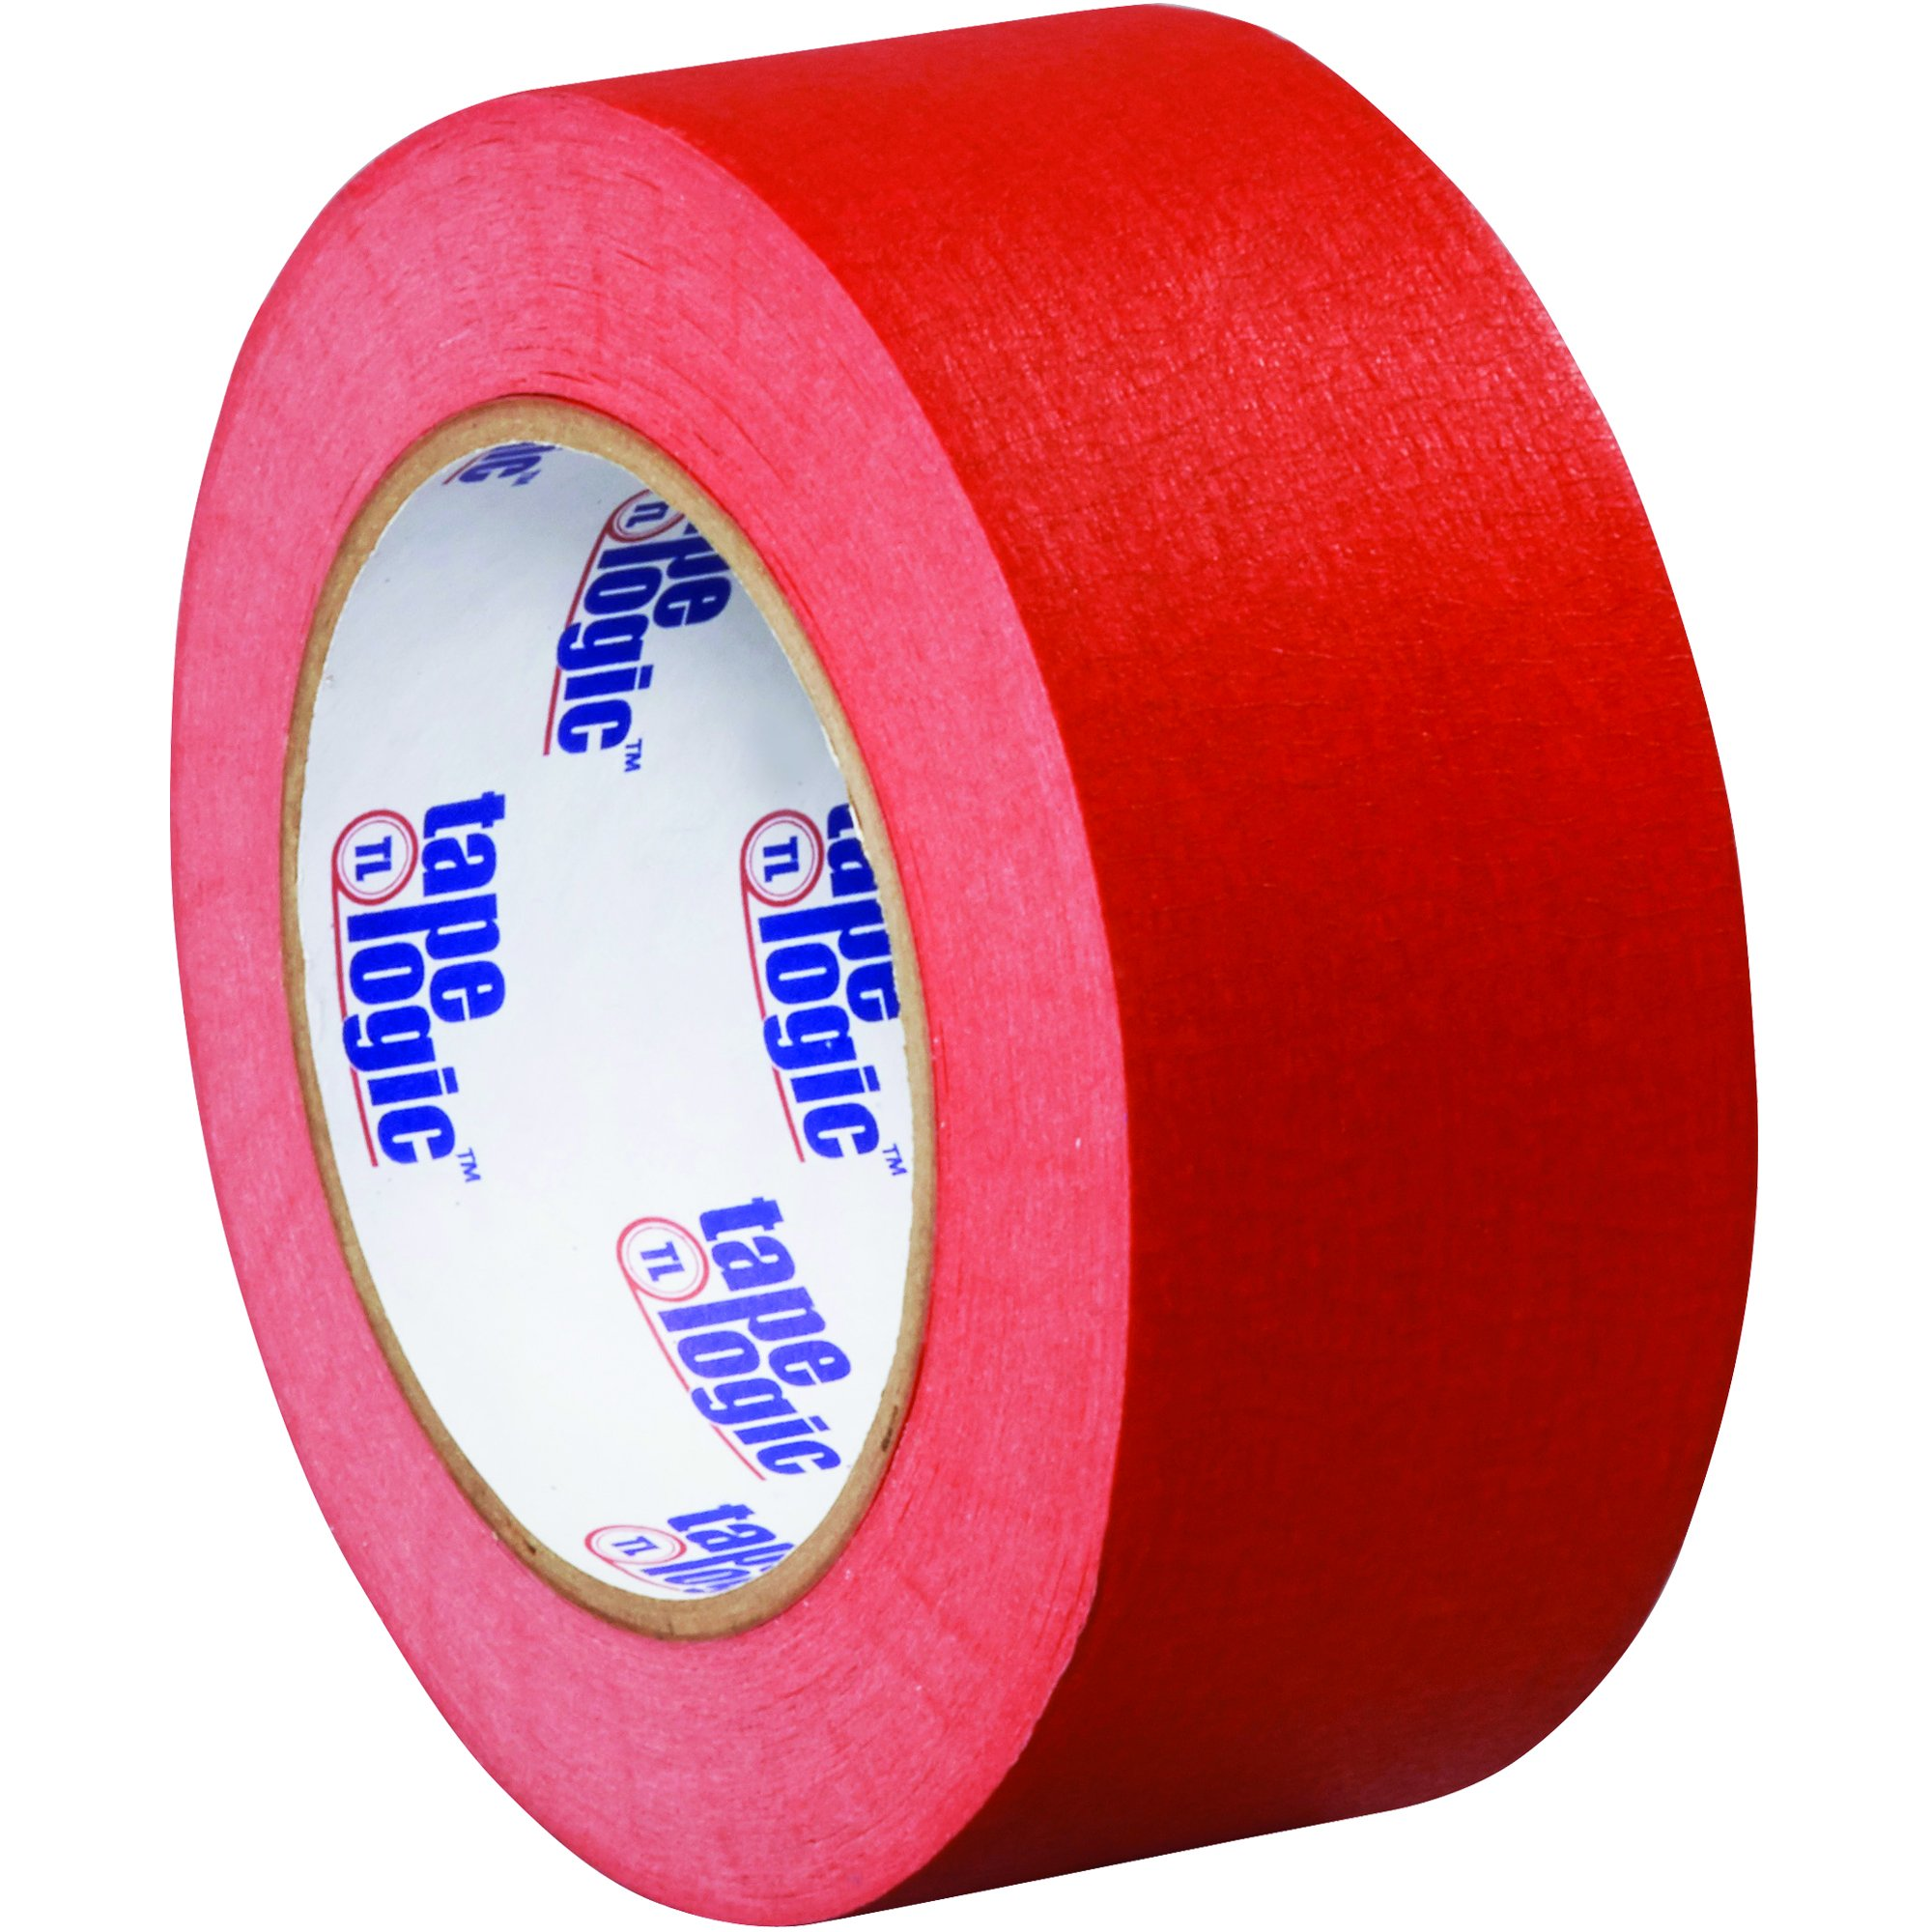 BOX USA BT93700312PKR Tape Logic Masking Tape, 2'' x 60 yd., Red (Pack of 12) by BOX USA